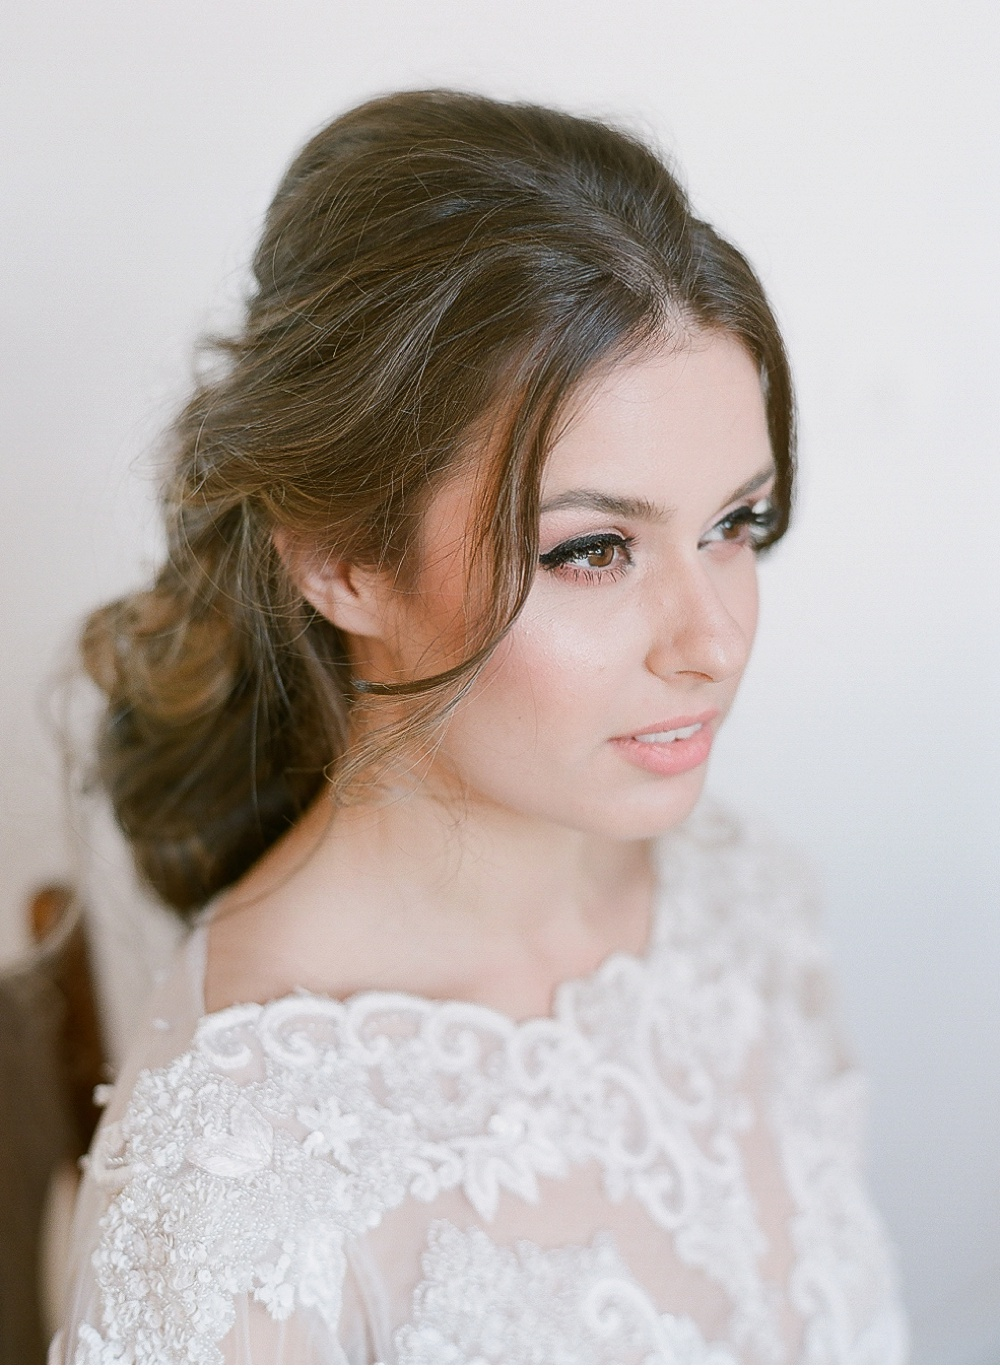 FineArt_Bridal_Shooting__0022.jpg